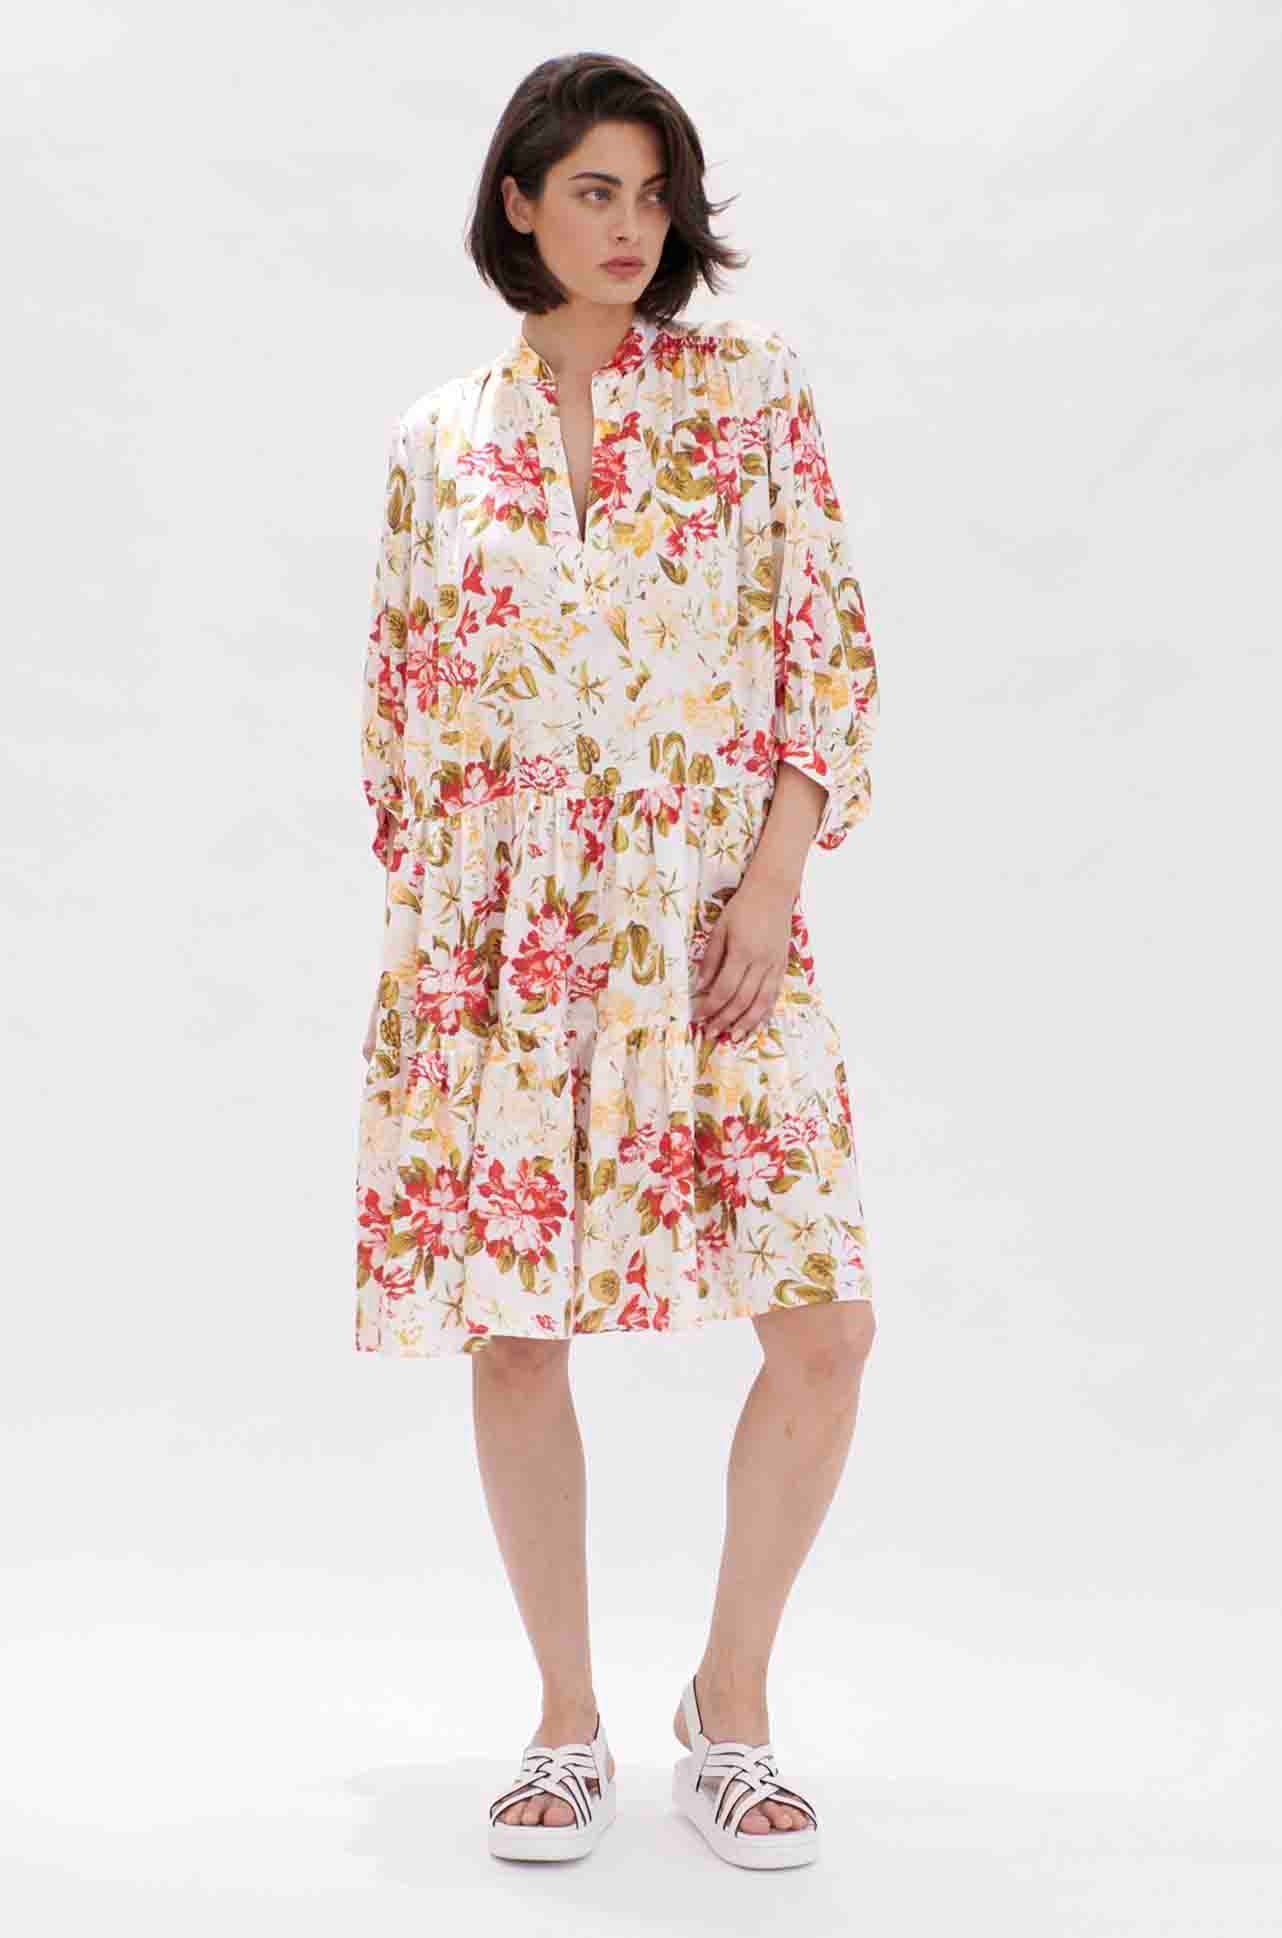 Mela Purdie - Moroccan Midi Dress in Hibiscus Print